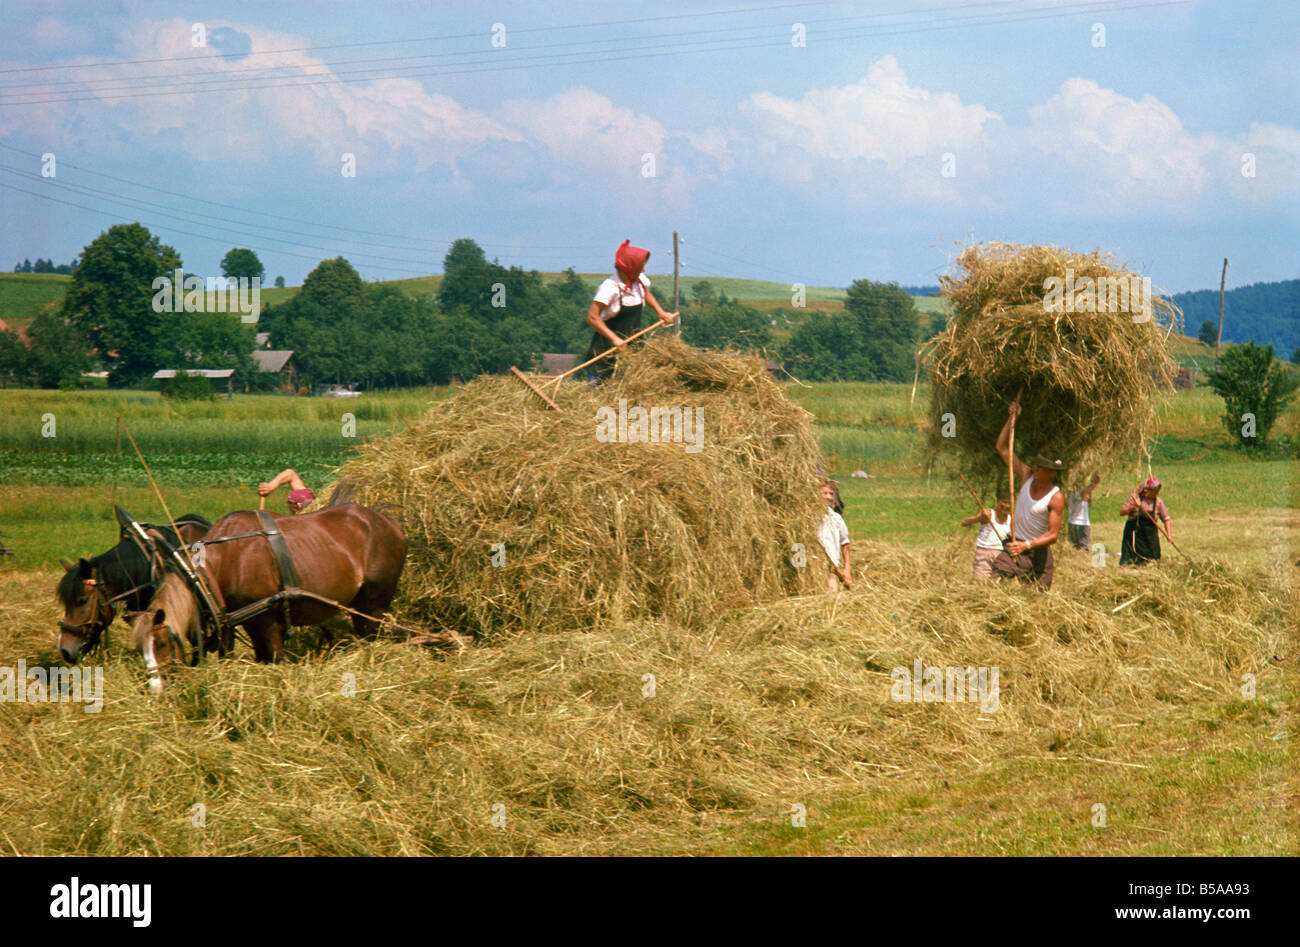 Haymaking in olden days Europe - Stock Image